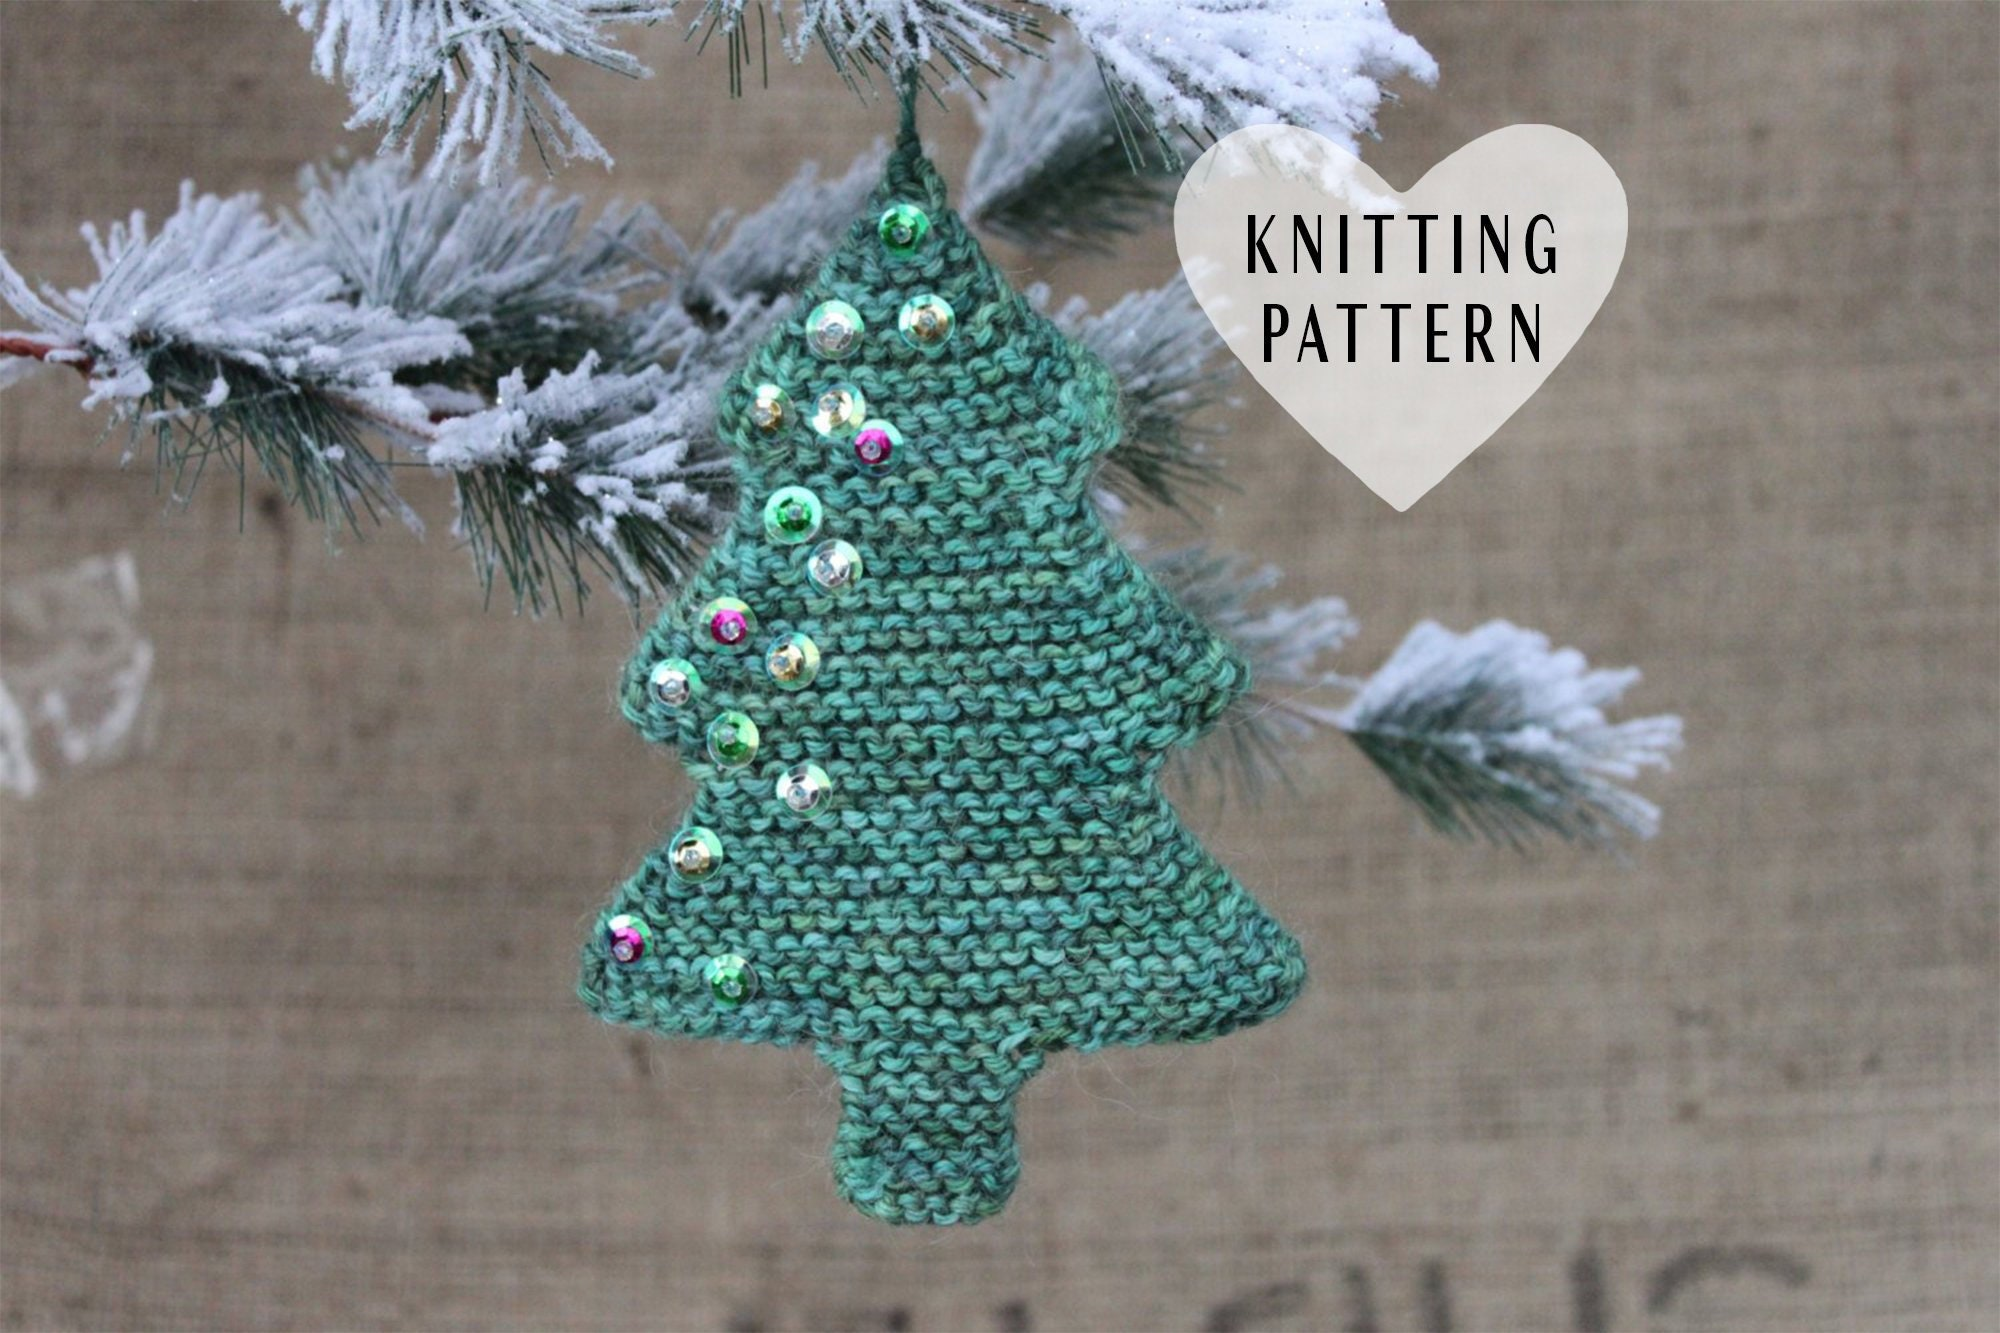 KNITTING PATTERN Knitted Christmas Tree Ornament Knit